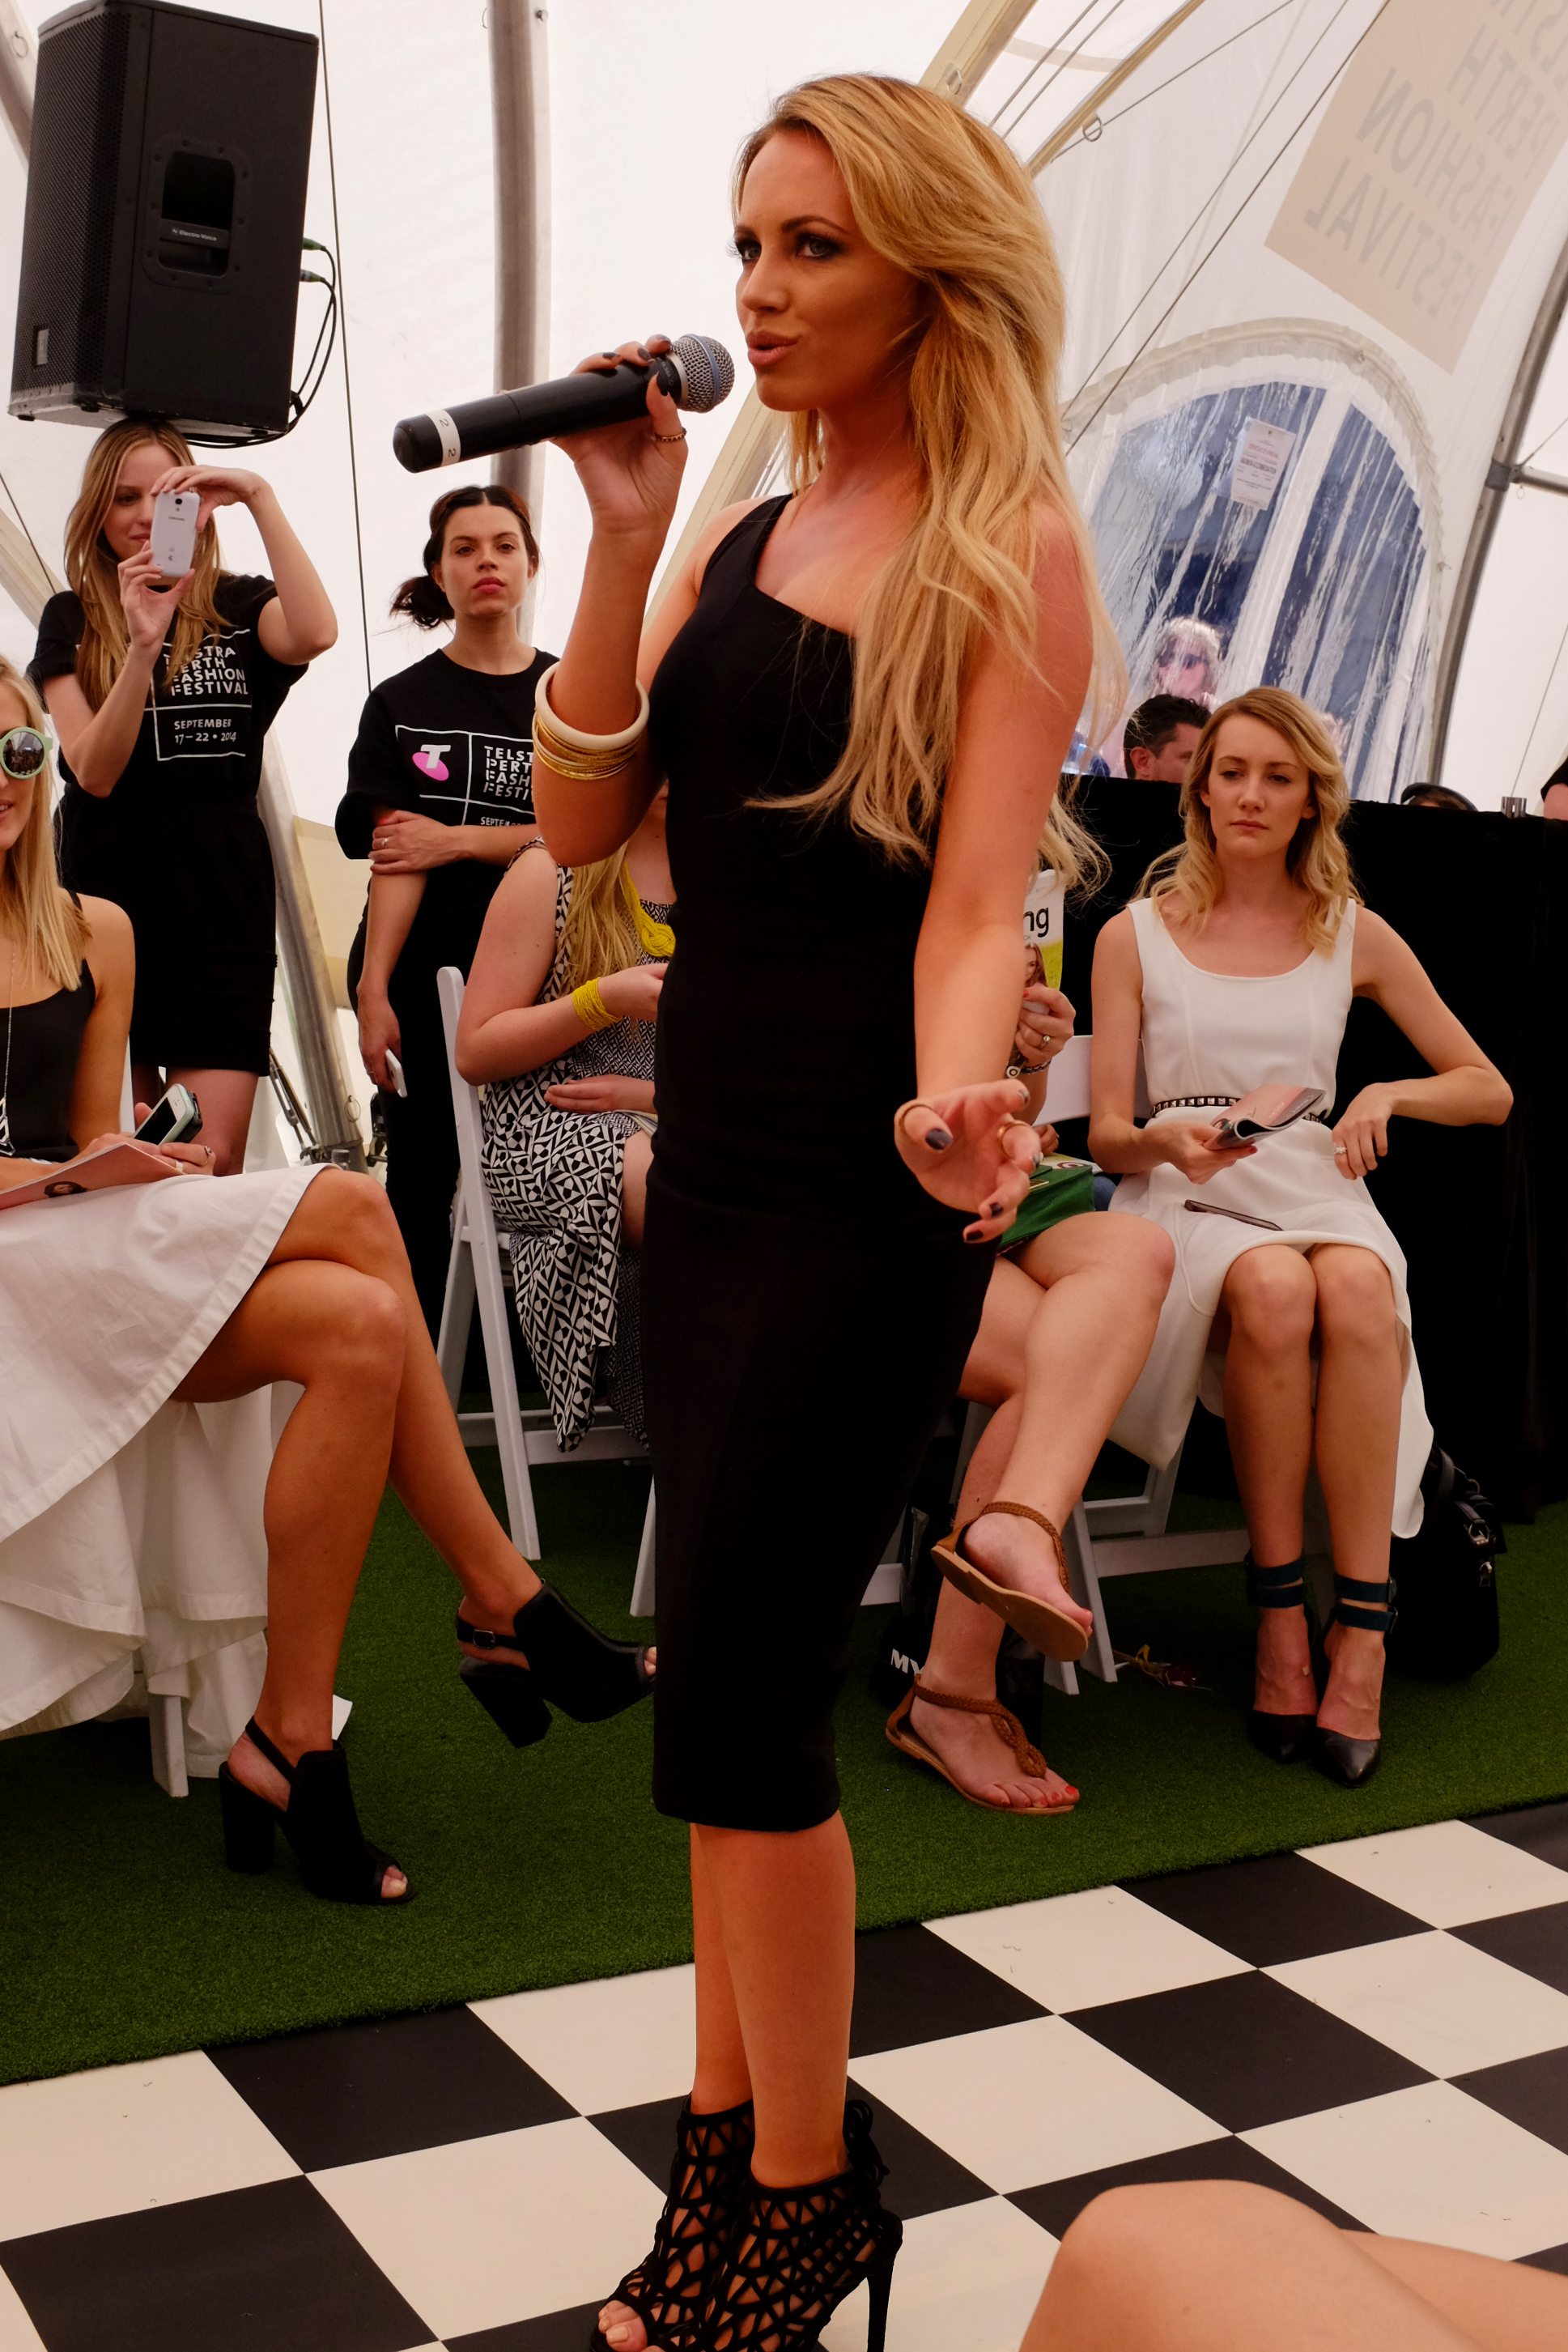 target, runway, TPFF, fashion, perth fashion, dannii minogue, Samantha Jade, singer, artist, models, sunglasses, style, cute, affordable, shopping, runway to rack, spring racing, nezuki, petite clothing, petite sizes, facinator